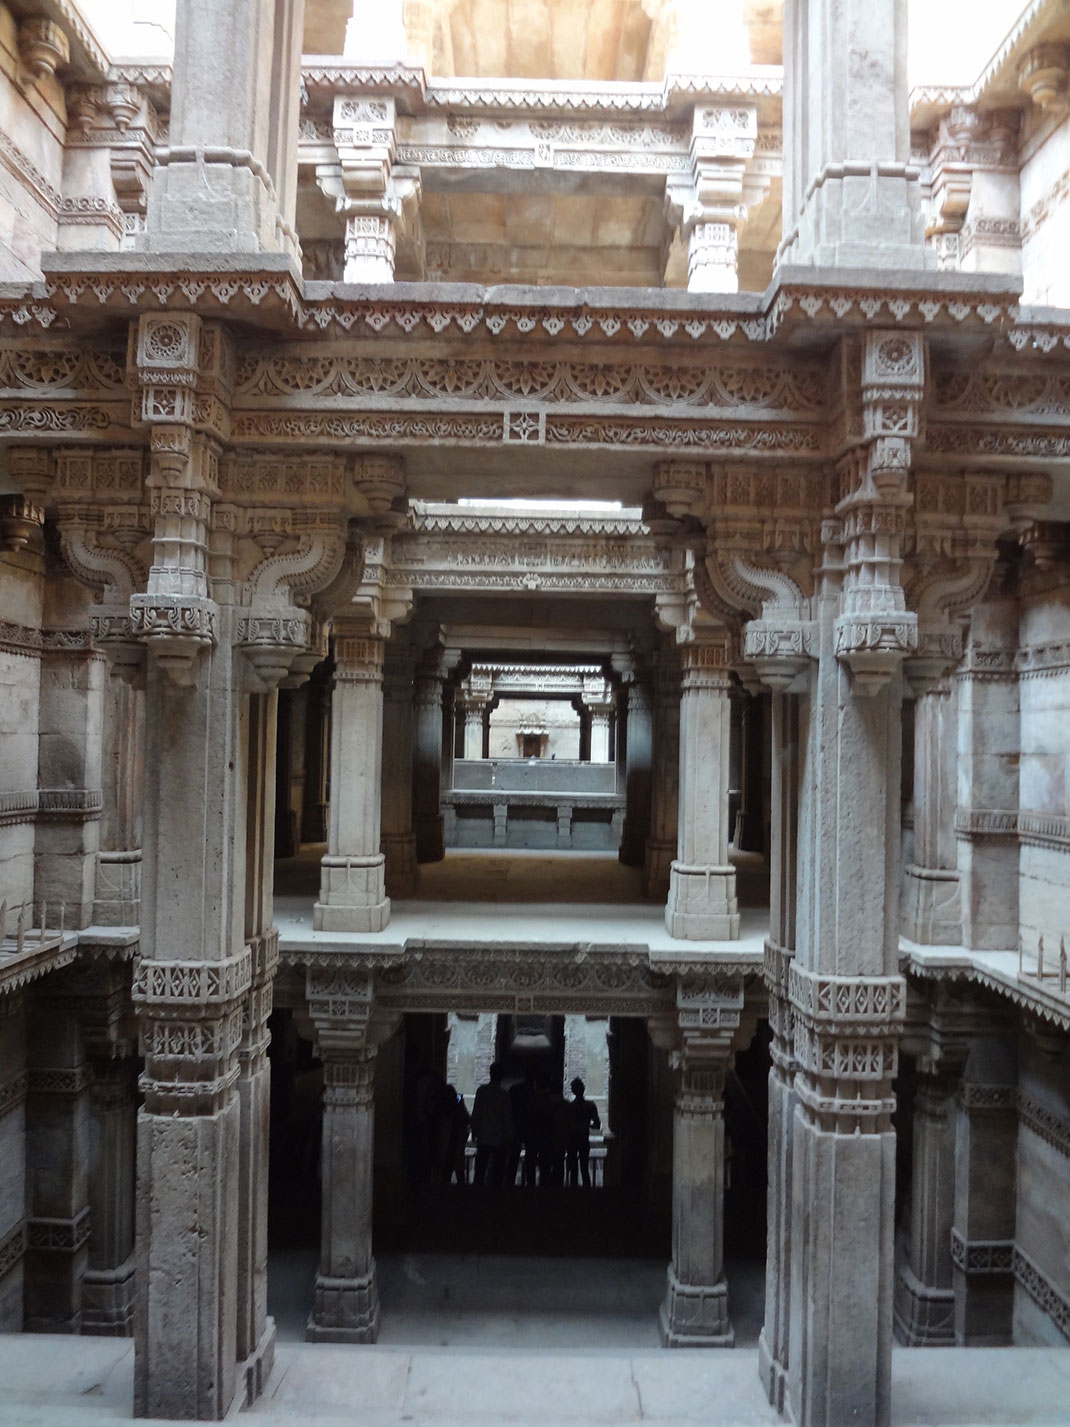 Admire These 2000 Year Old Somptous Buildings In India Destined To Disappear-10